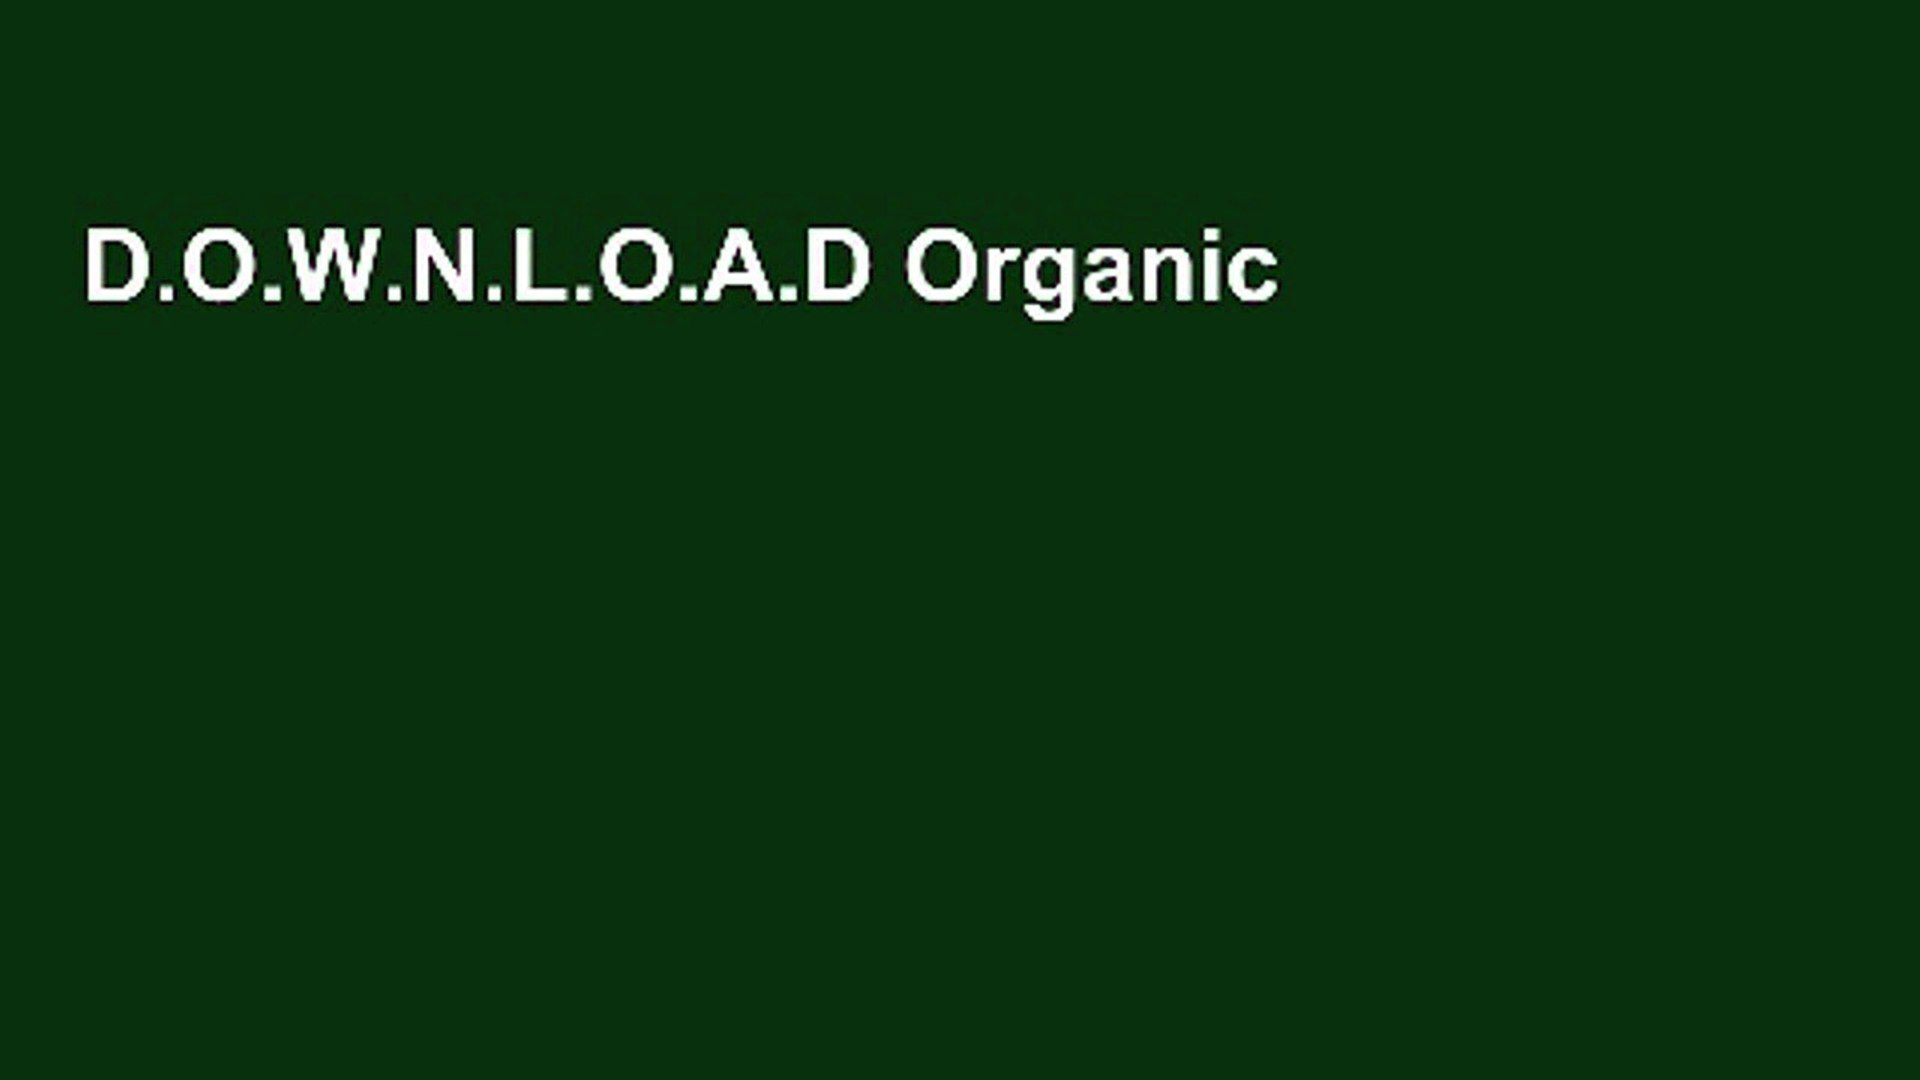 D.O.W.N.L.O.A.D Organic Body Care Recipes: 175 Homemade Herbal Formula for Glowing Skin   a